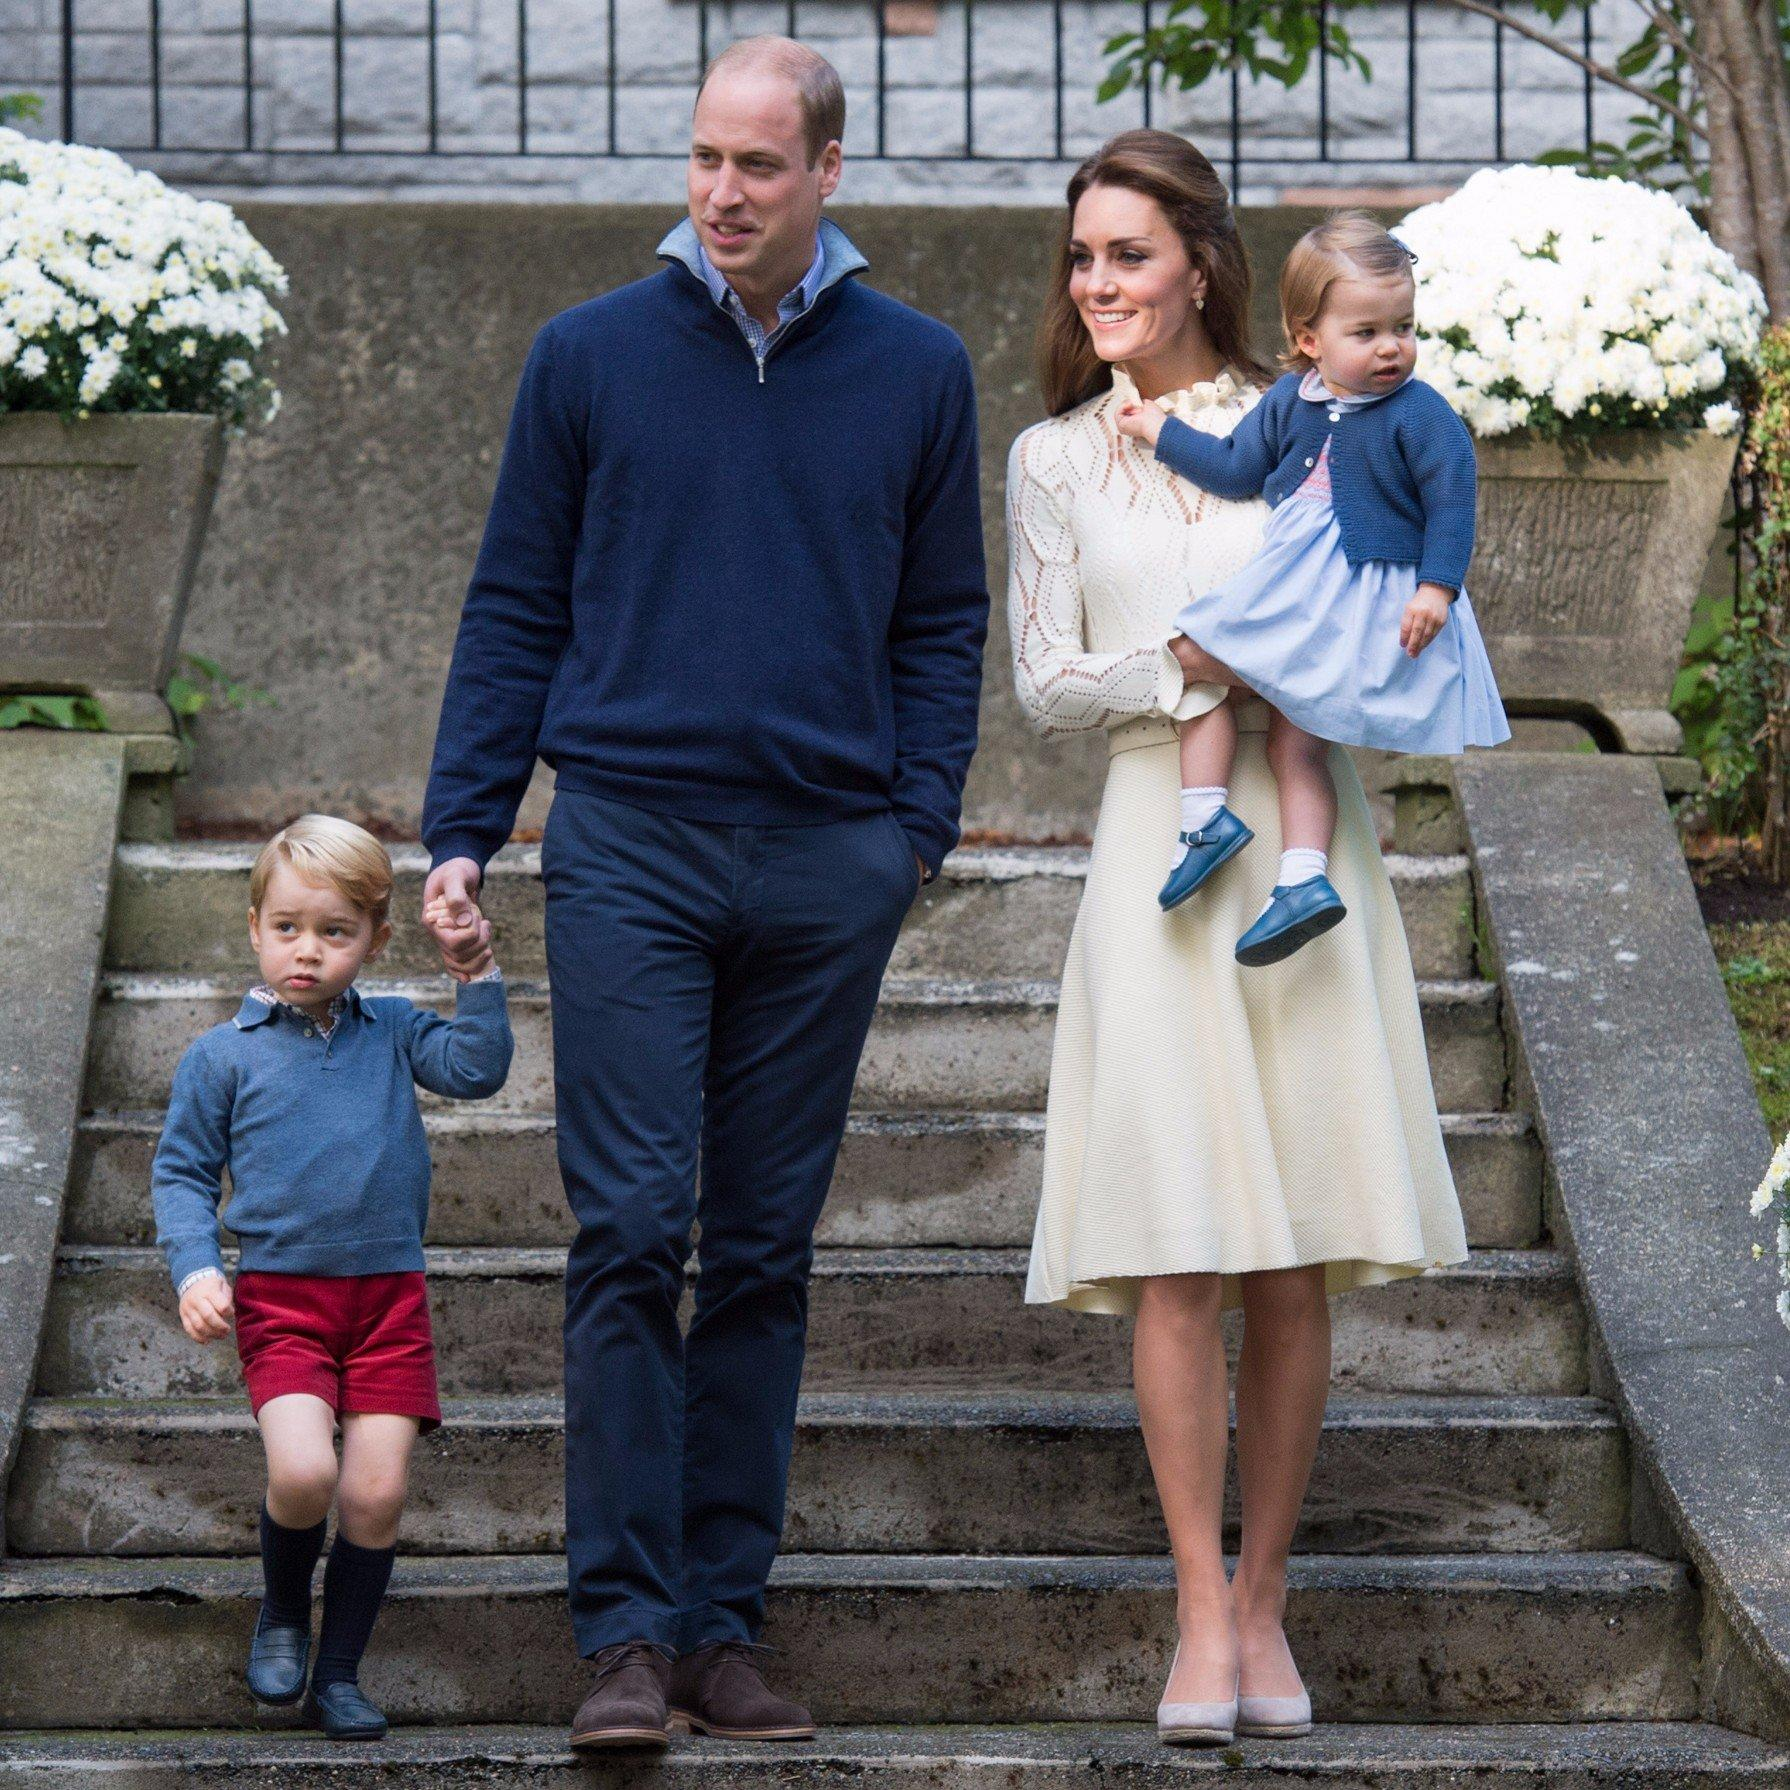 Is This The Reason William And Kate Have Gone For Baby No. 3?